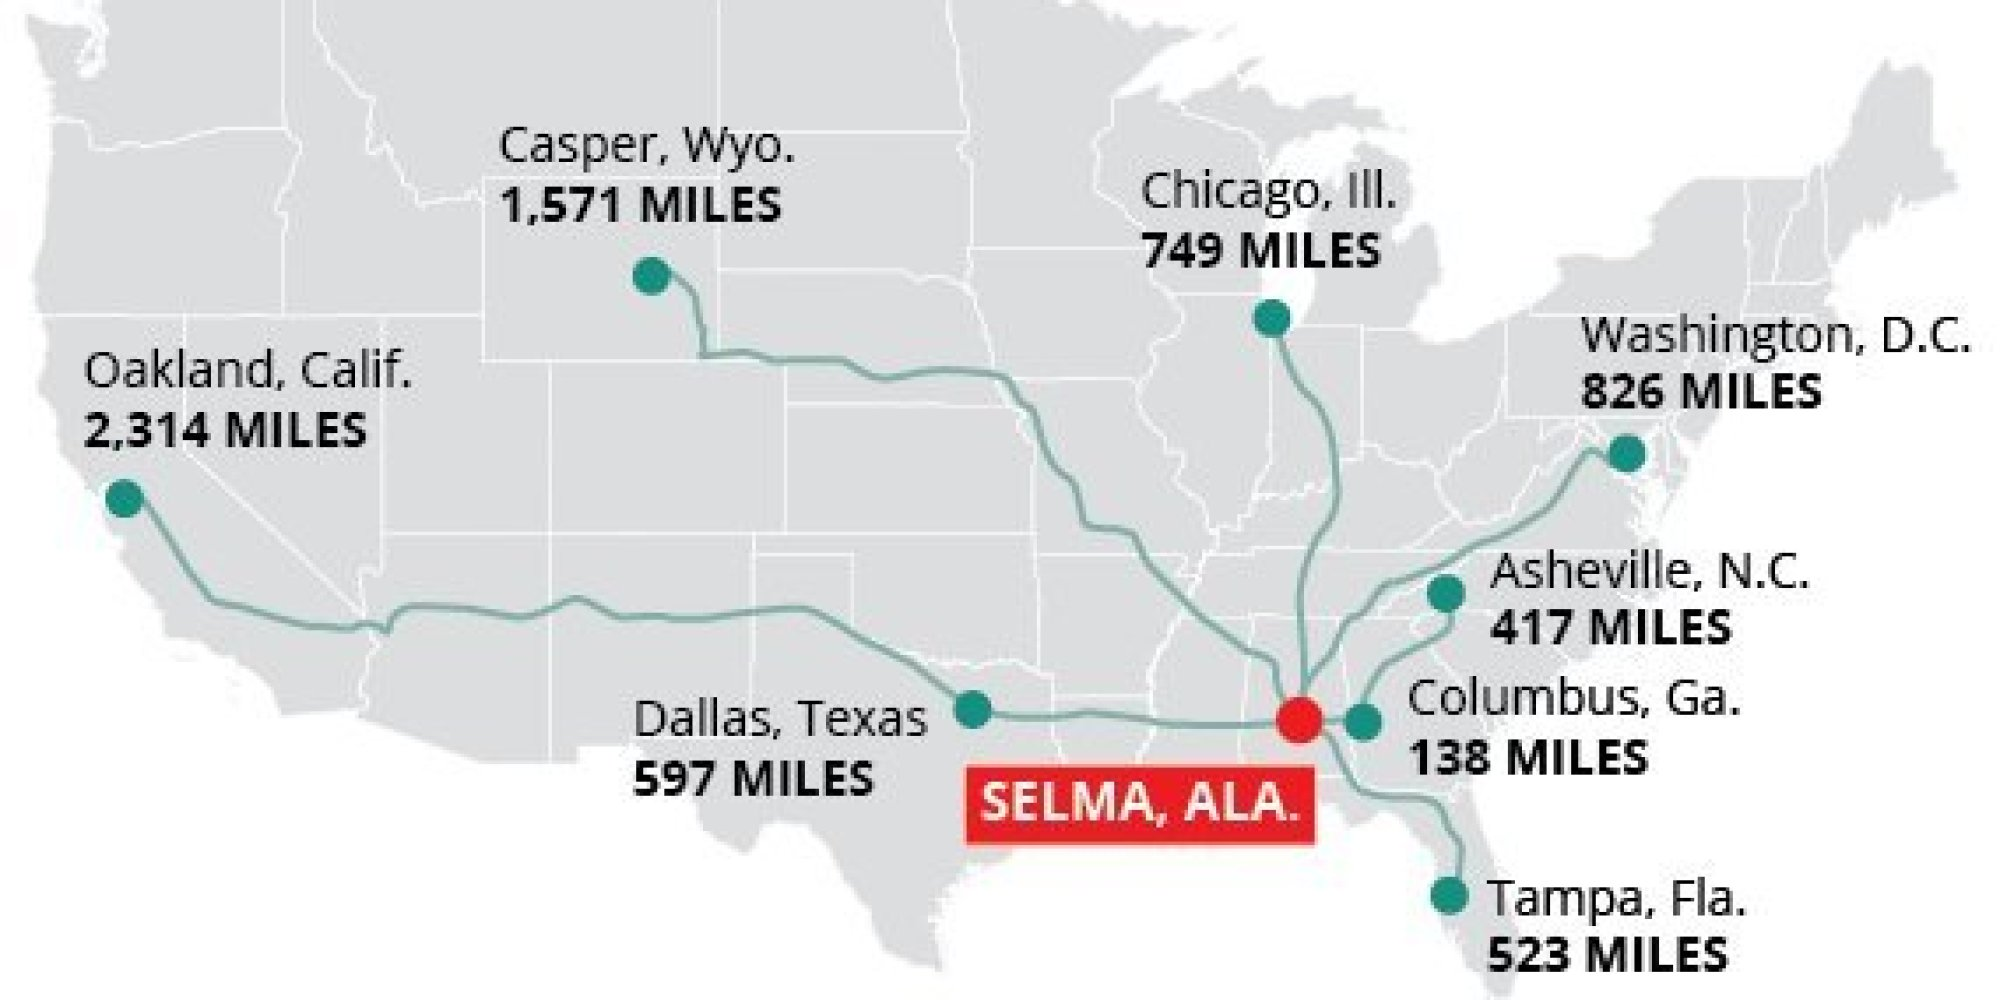 Thousands Of Miles Are No Big Deal For These Citizens Traveling To Selma This